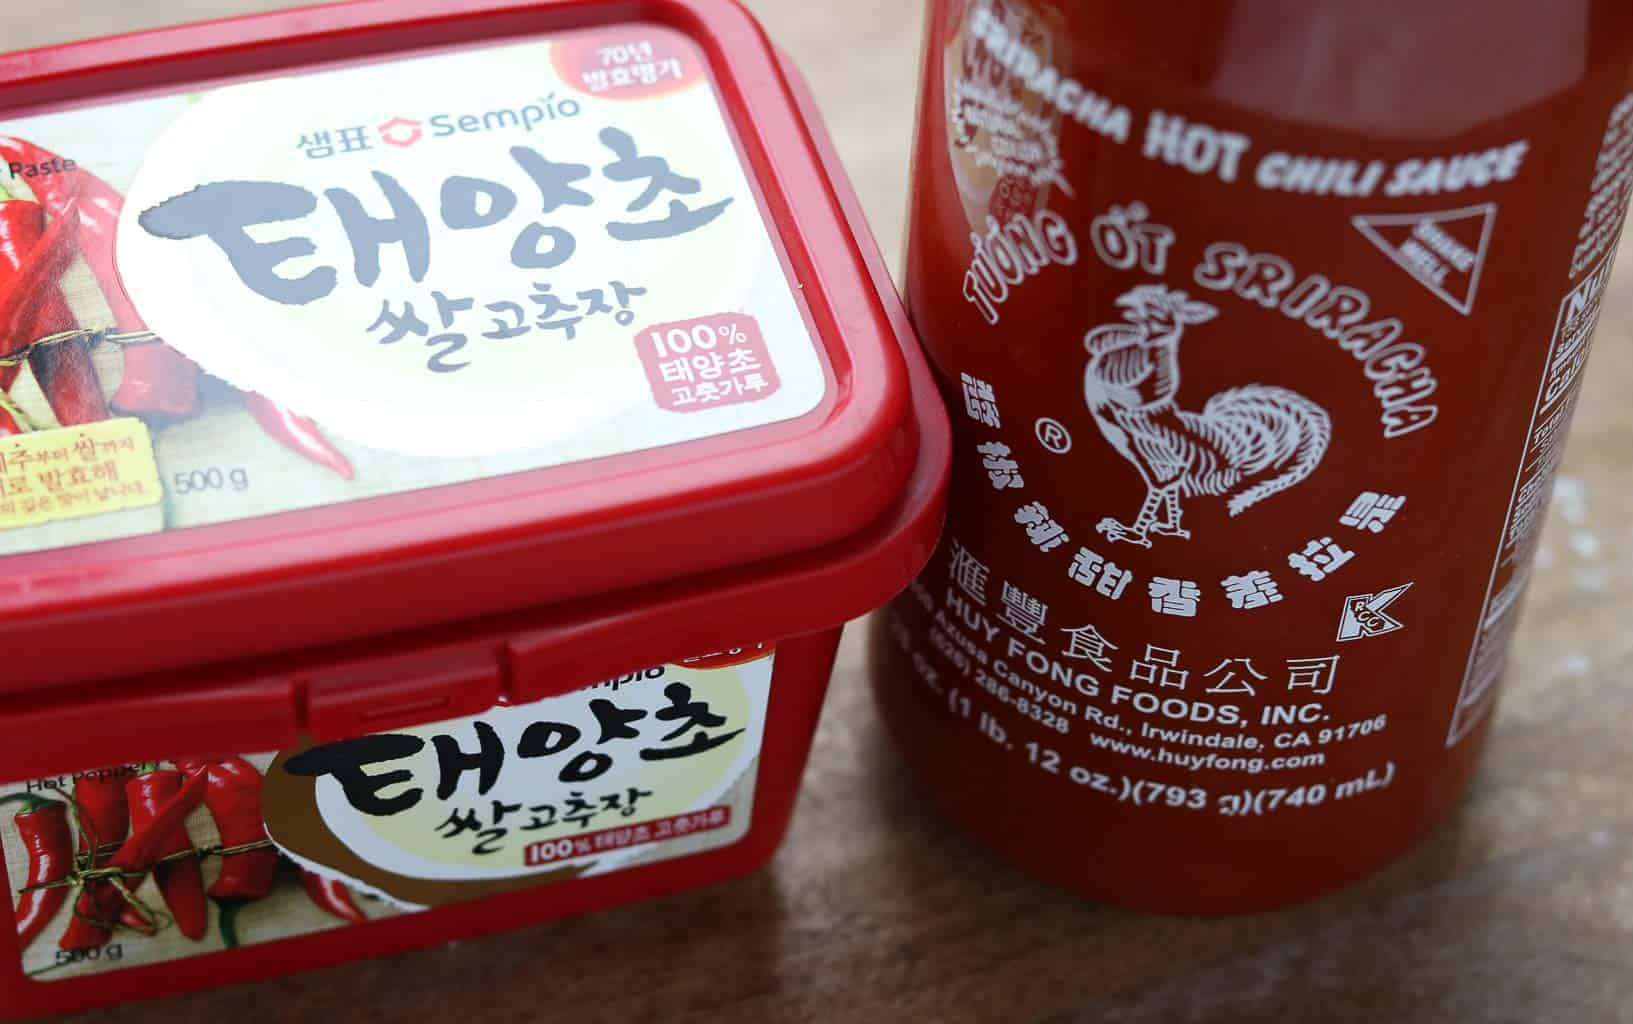 Gochujang and Sriracha sauce in original containers on a wooden board from Gourmet Done Skinny